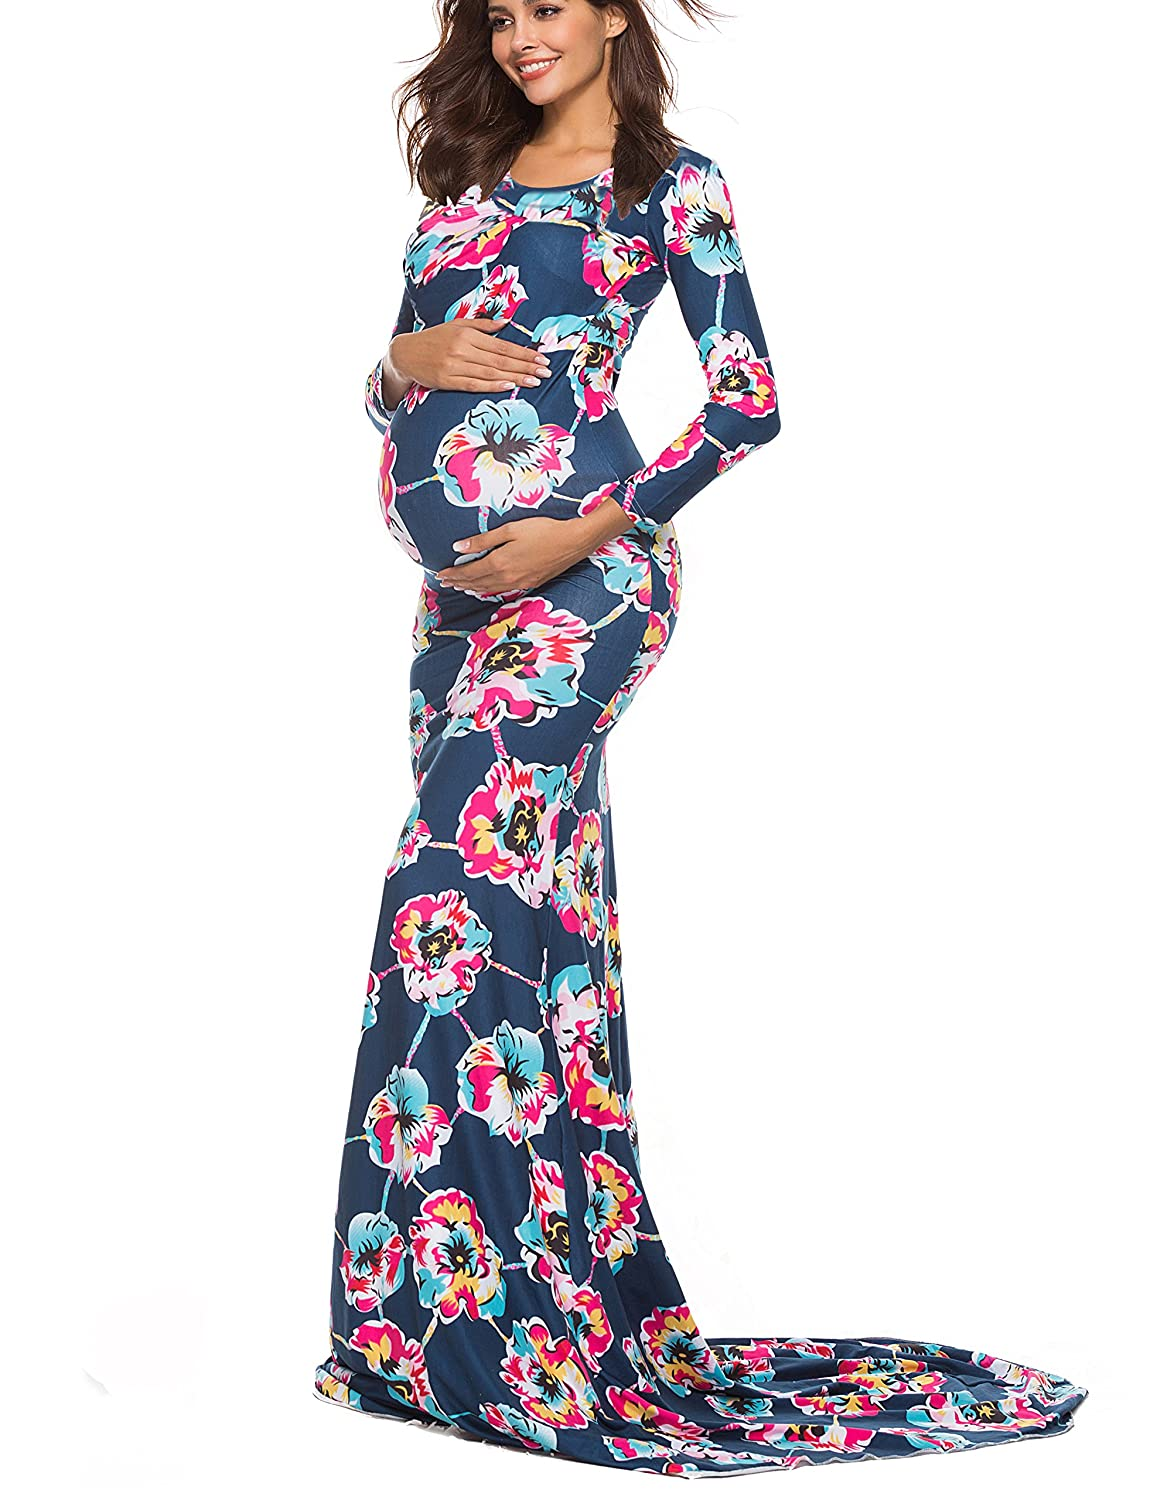 798c62c6a41dc Unline,Floral Print,Long Sleeve,High Waist,Scoop Neck The Light Weight  style maternity gown features fitted long sleeves, ...